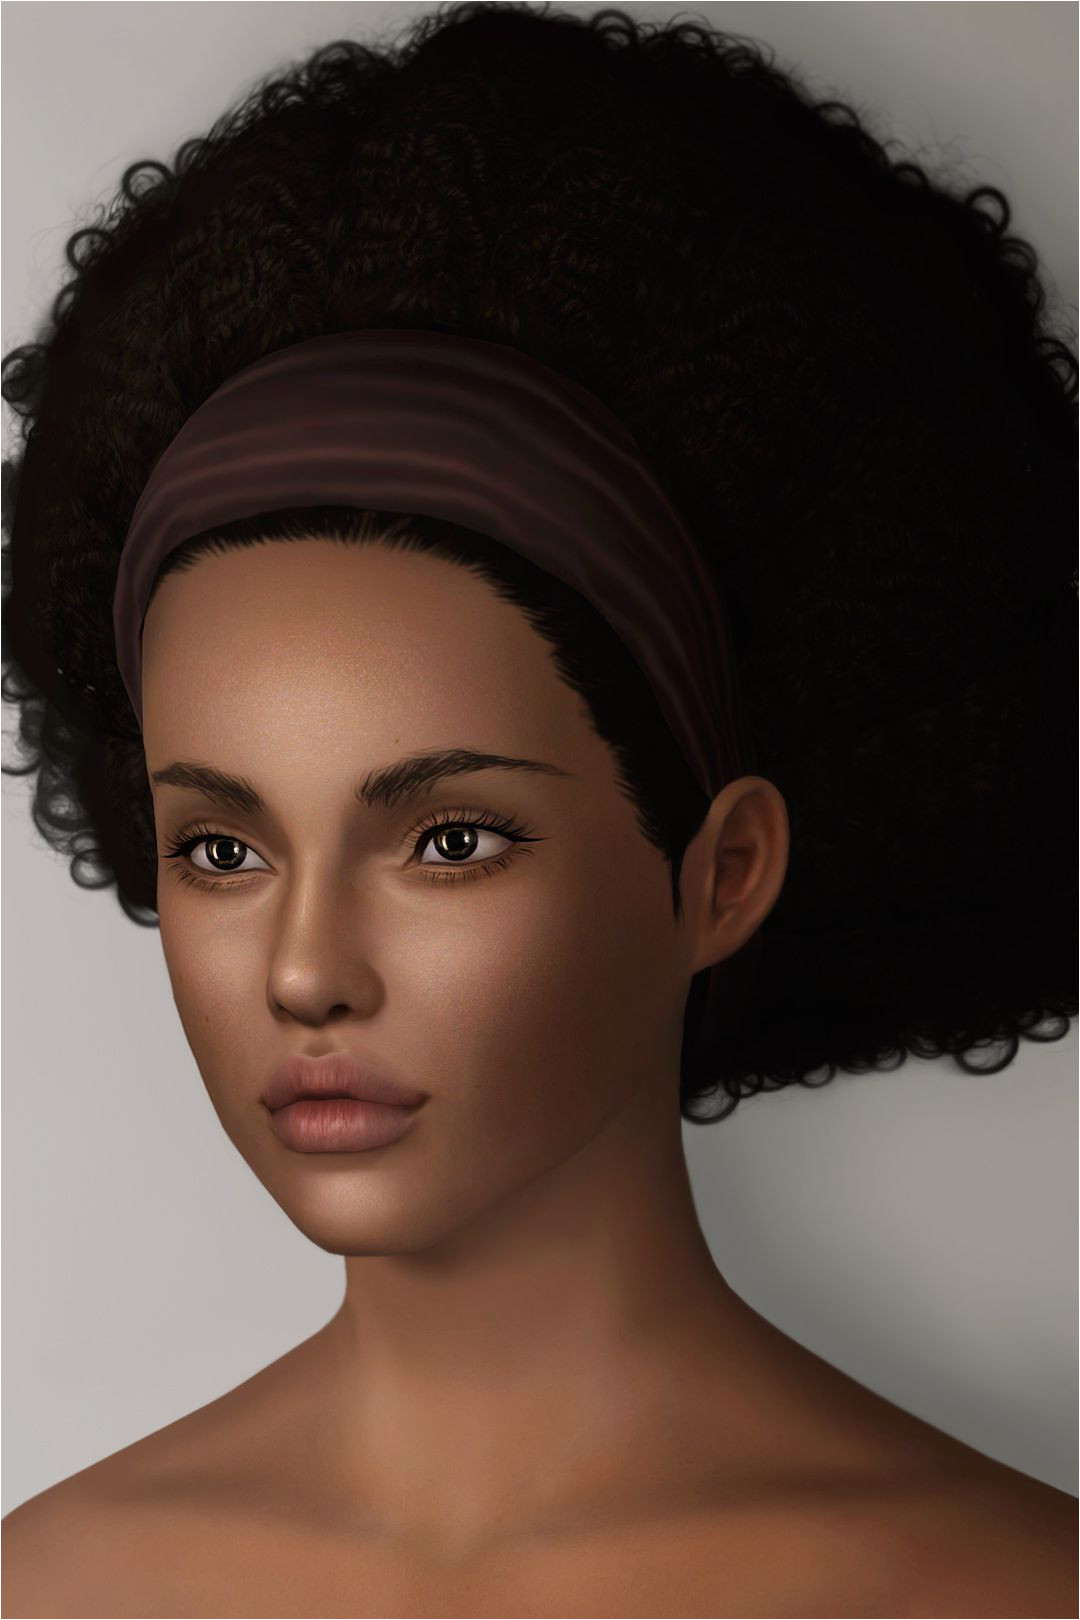 Sims 3 Black Hairstyles Download Image Result for Black Sims 3 Sims ♡ Pinterest